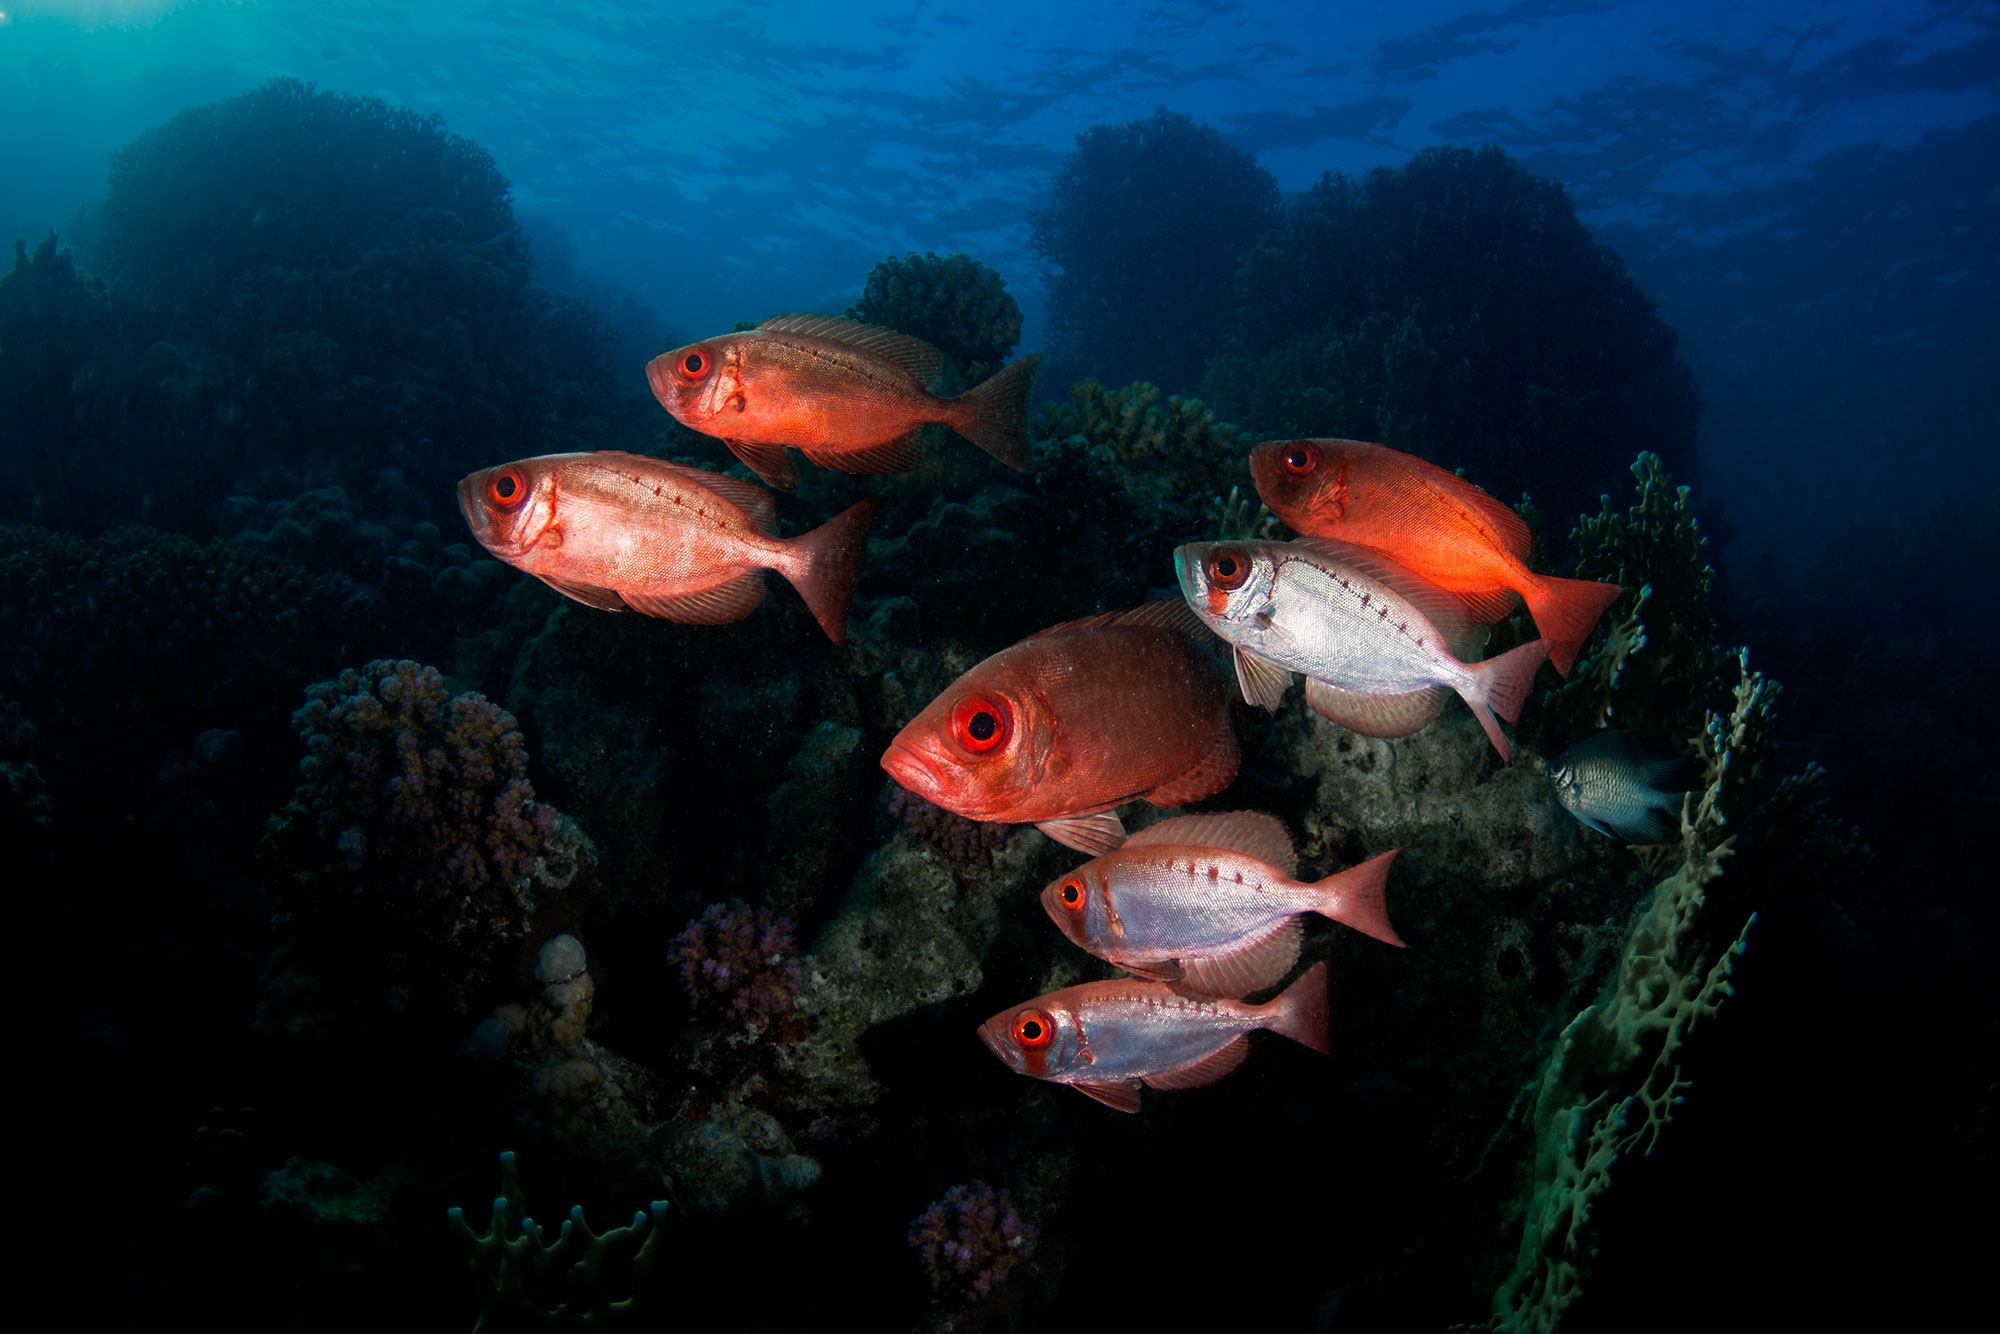 Soldier Fish, Elphinstone Reef, Red Sea, Egypt